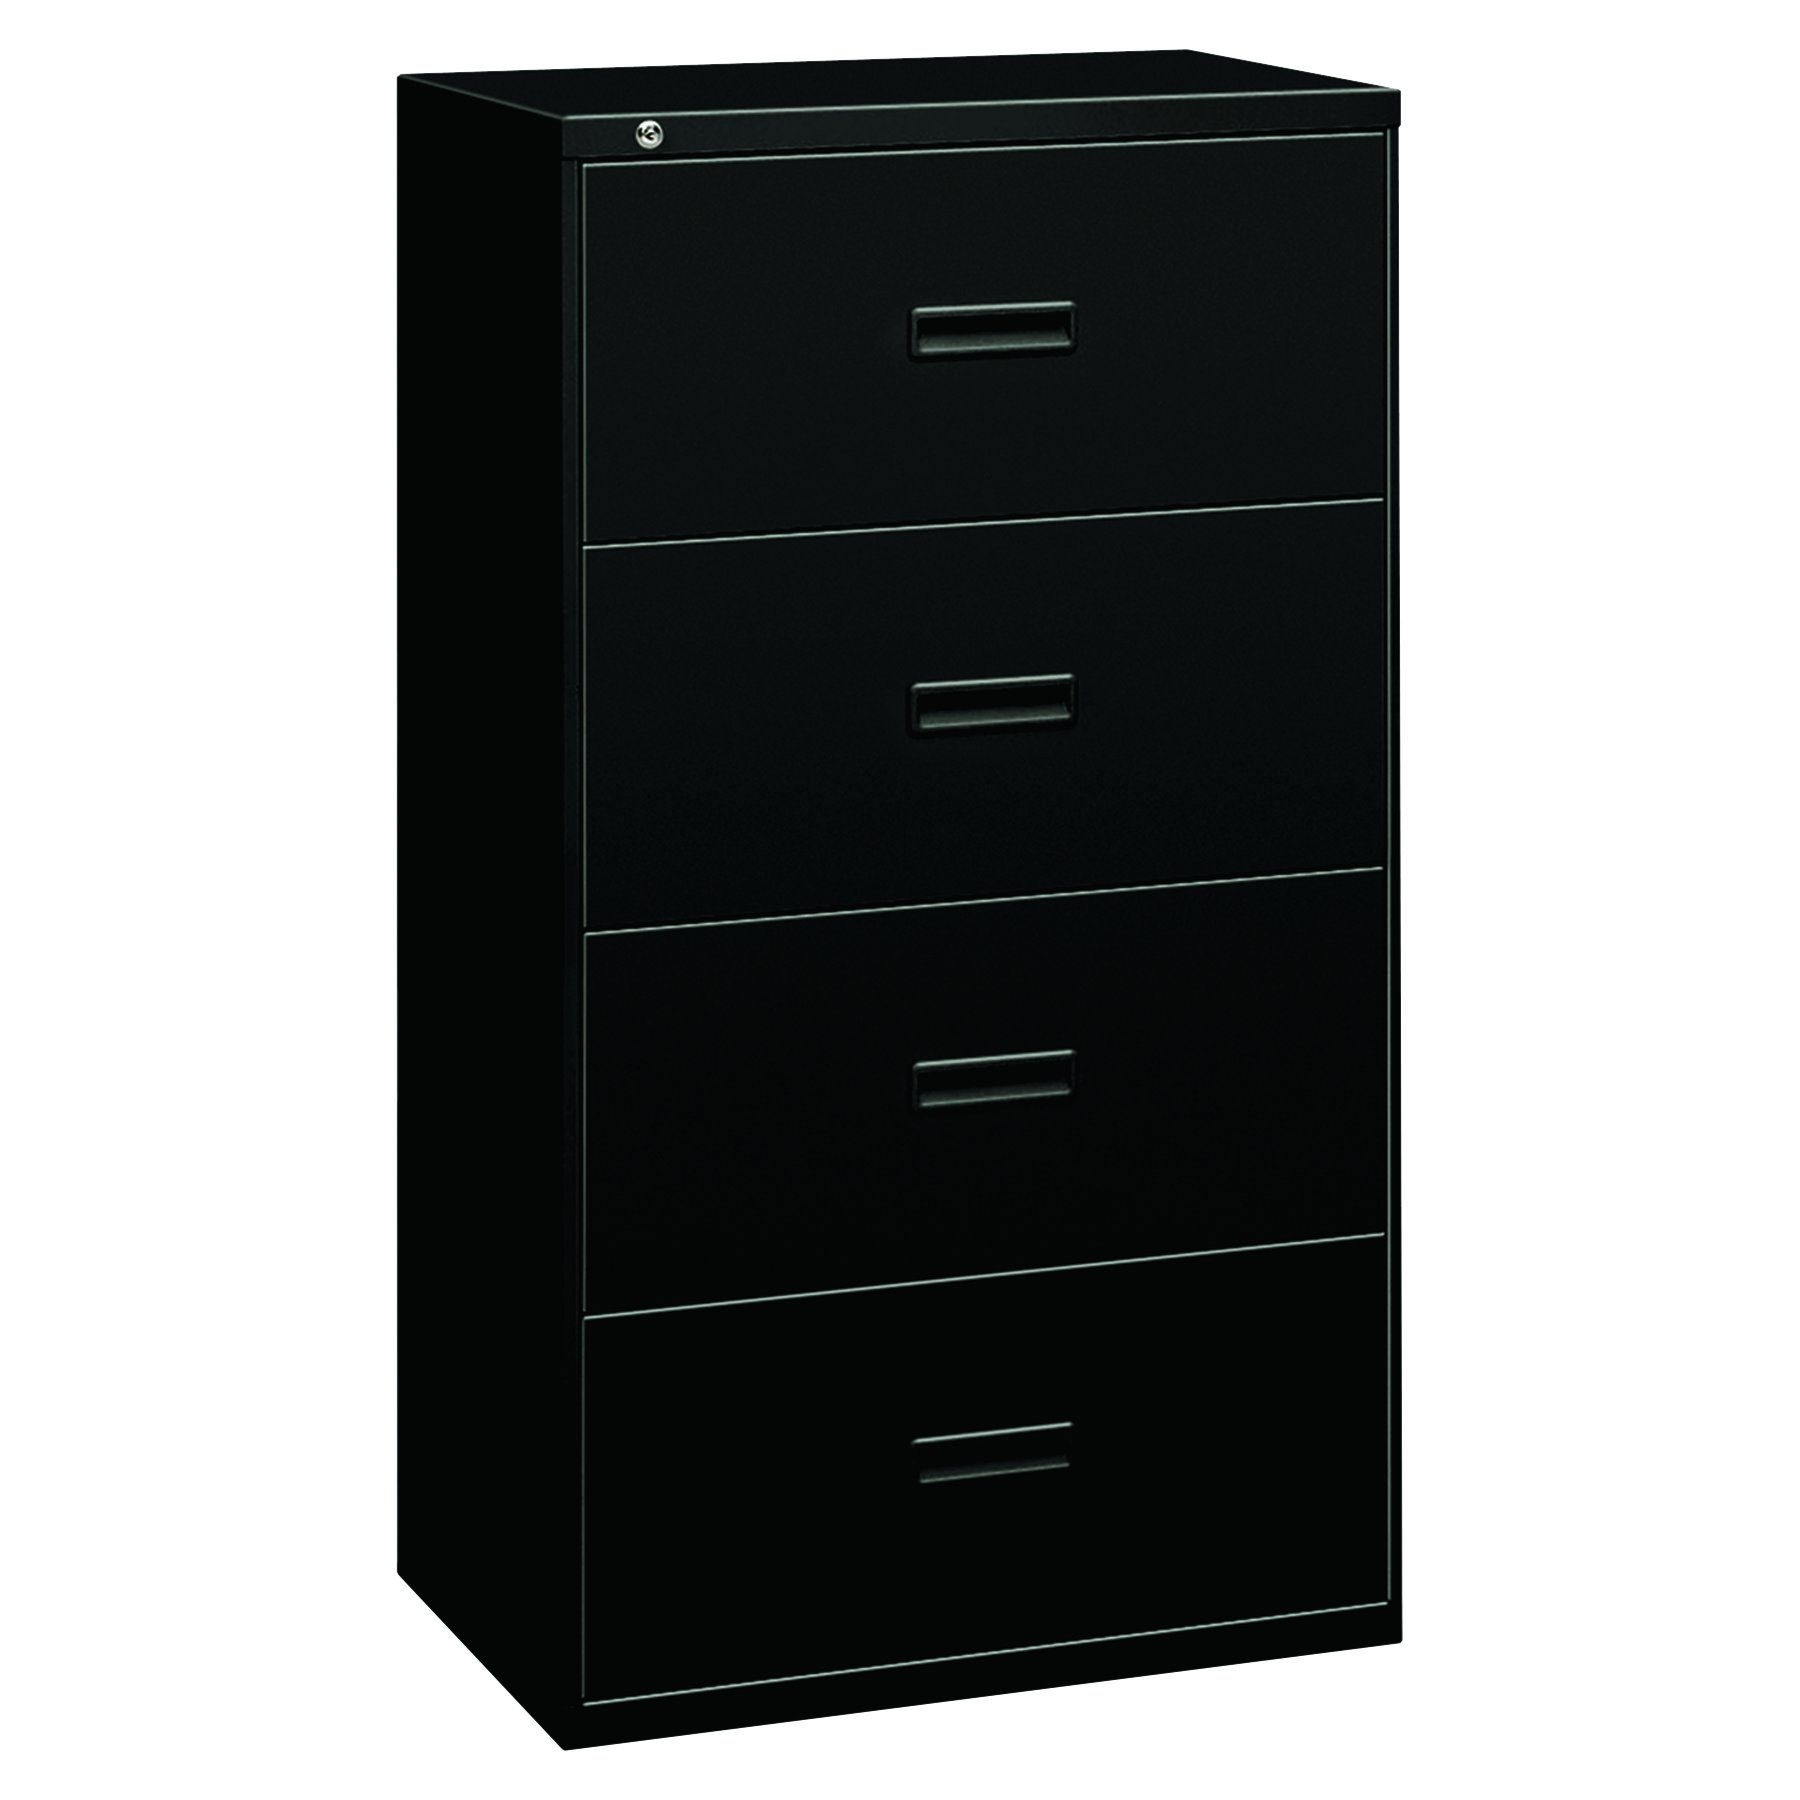 HON Filing Cabinet - 400 Series Four-Drawer Lateral File Cabinet, 30w x 19-1/4d x 53-1/4h, Black, (434LP)